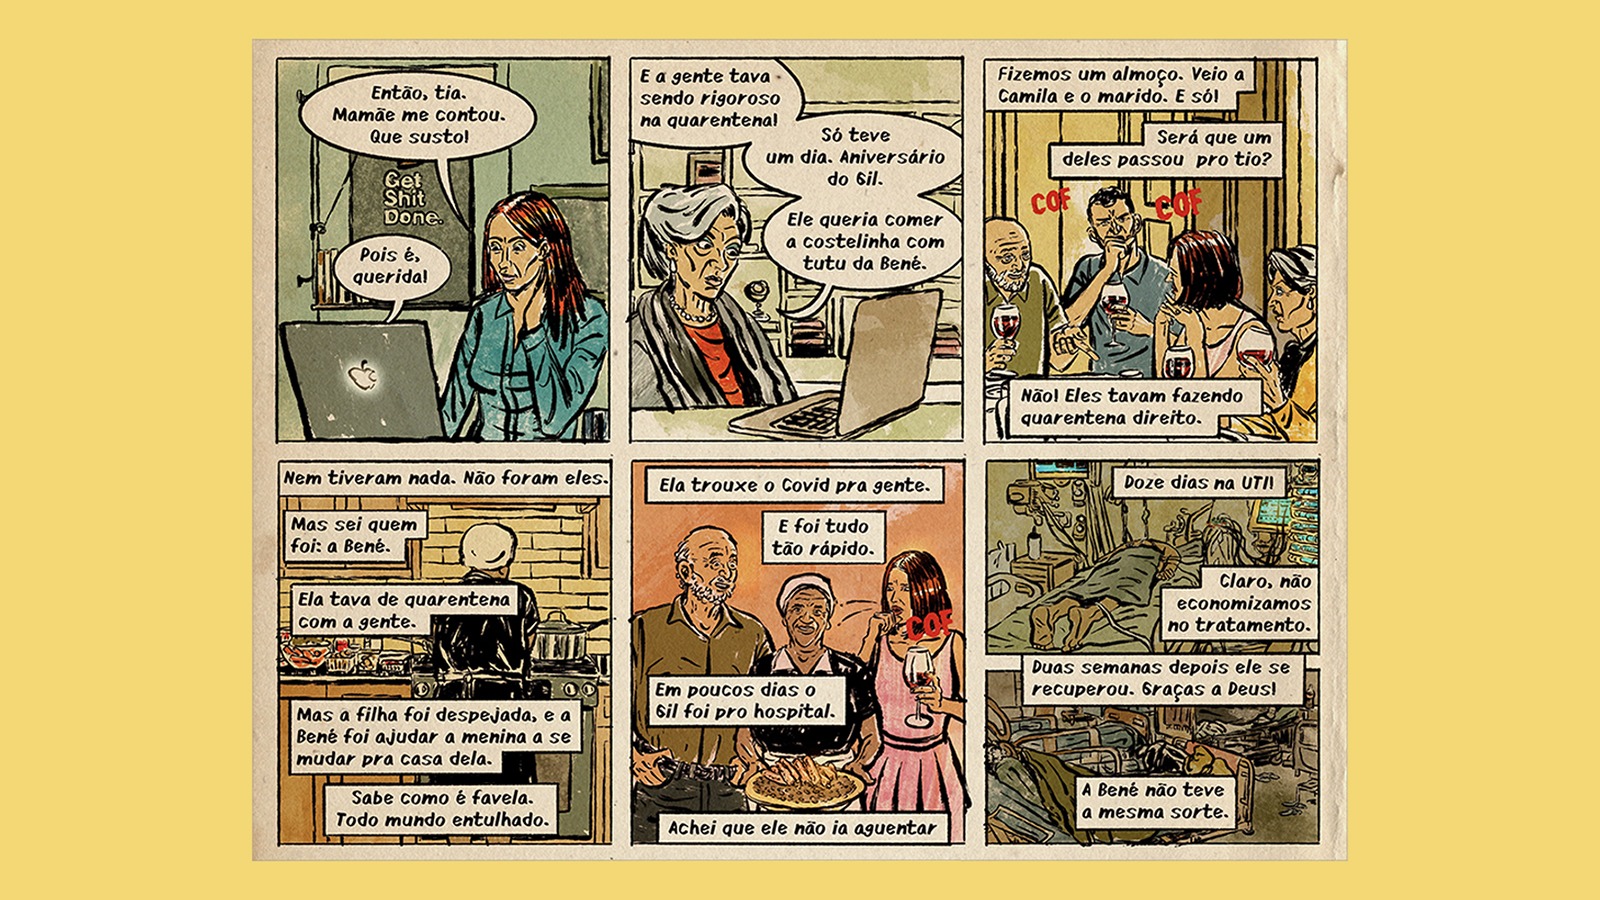 A New Comic Exposes Racism Amid the Pandemic in Brazil